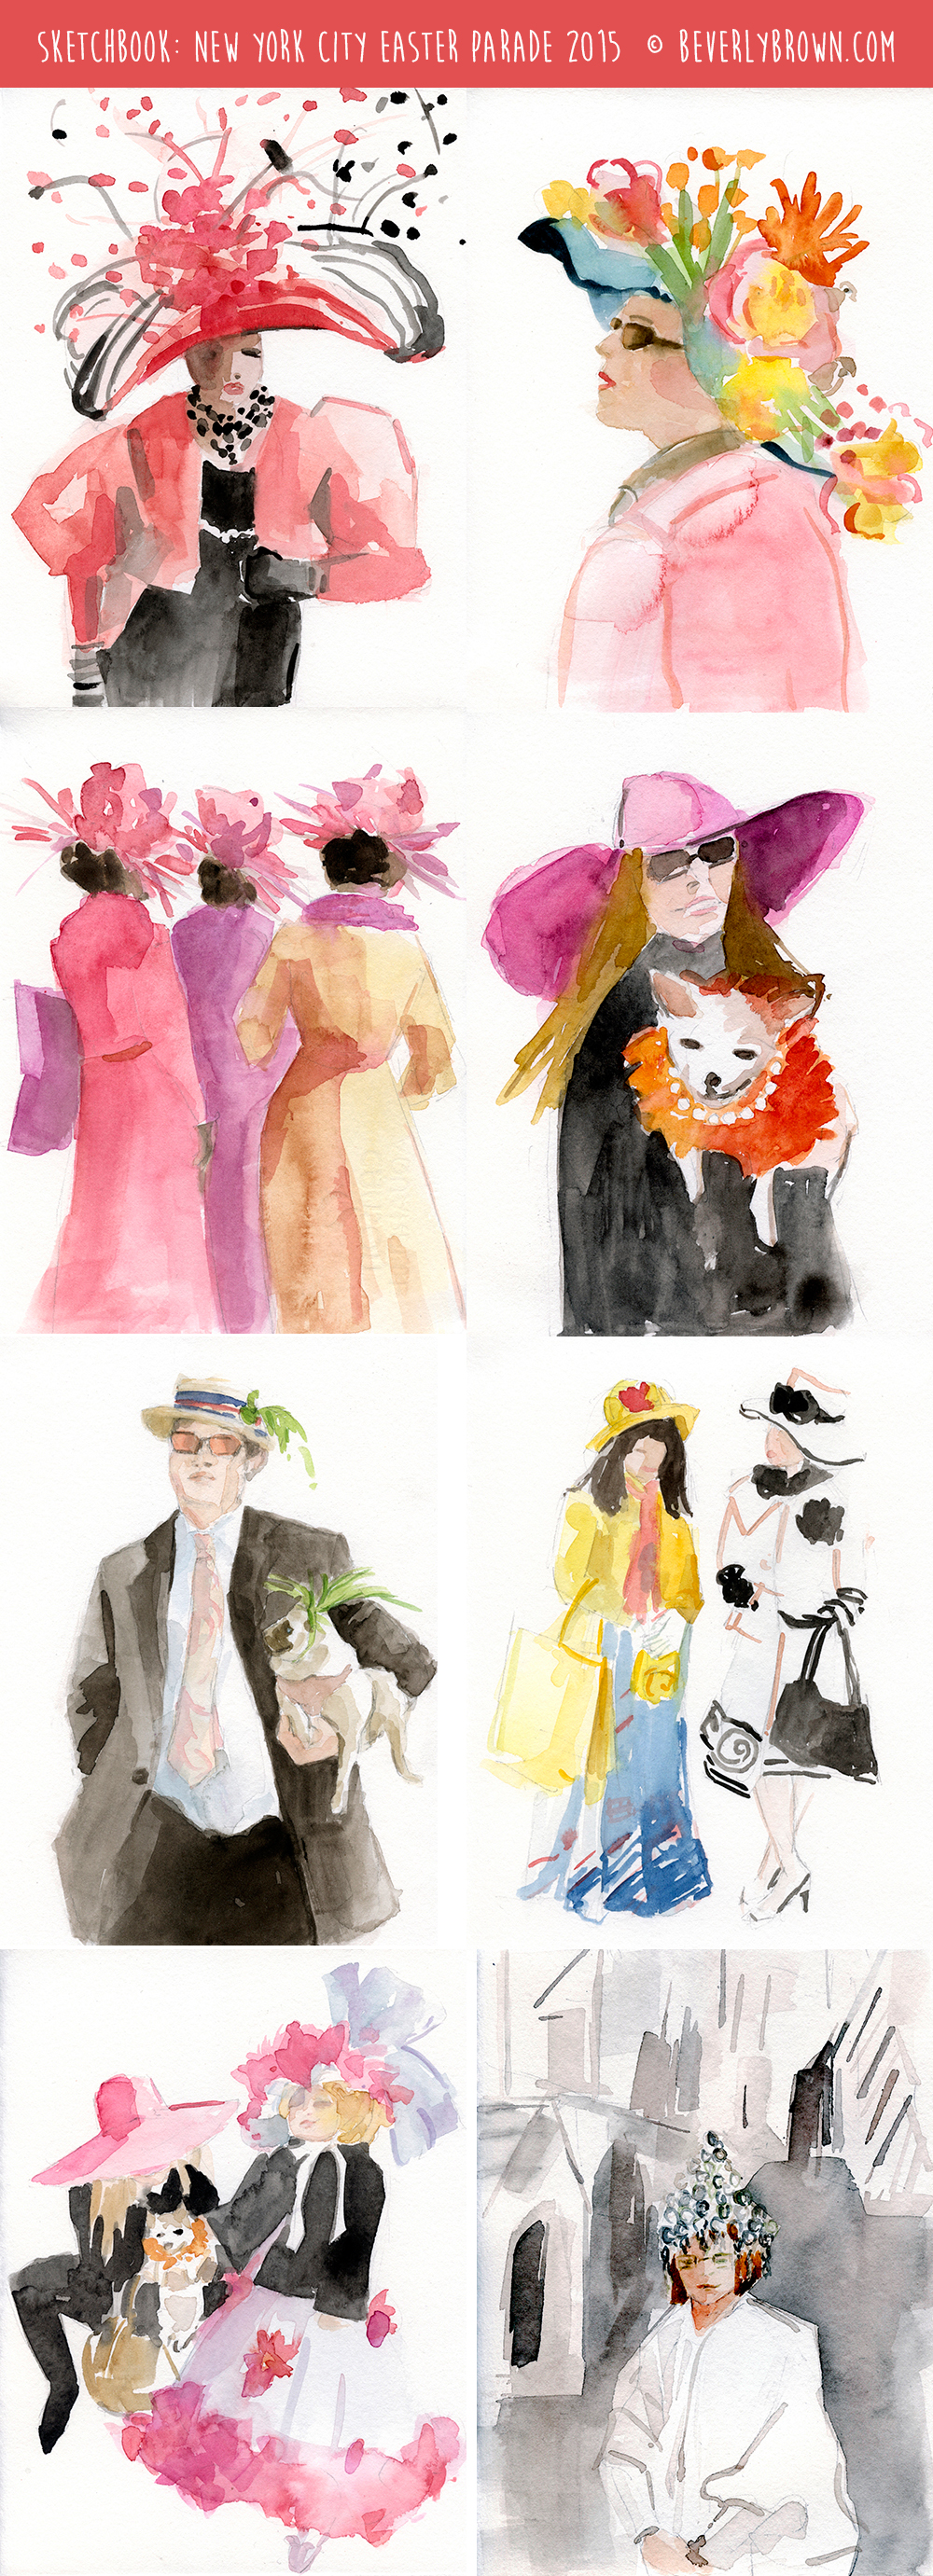 NYC Easter Parade - Watercolor Sketchbook by Beverly Brown